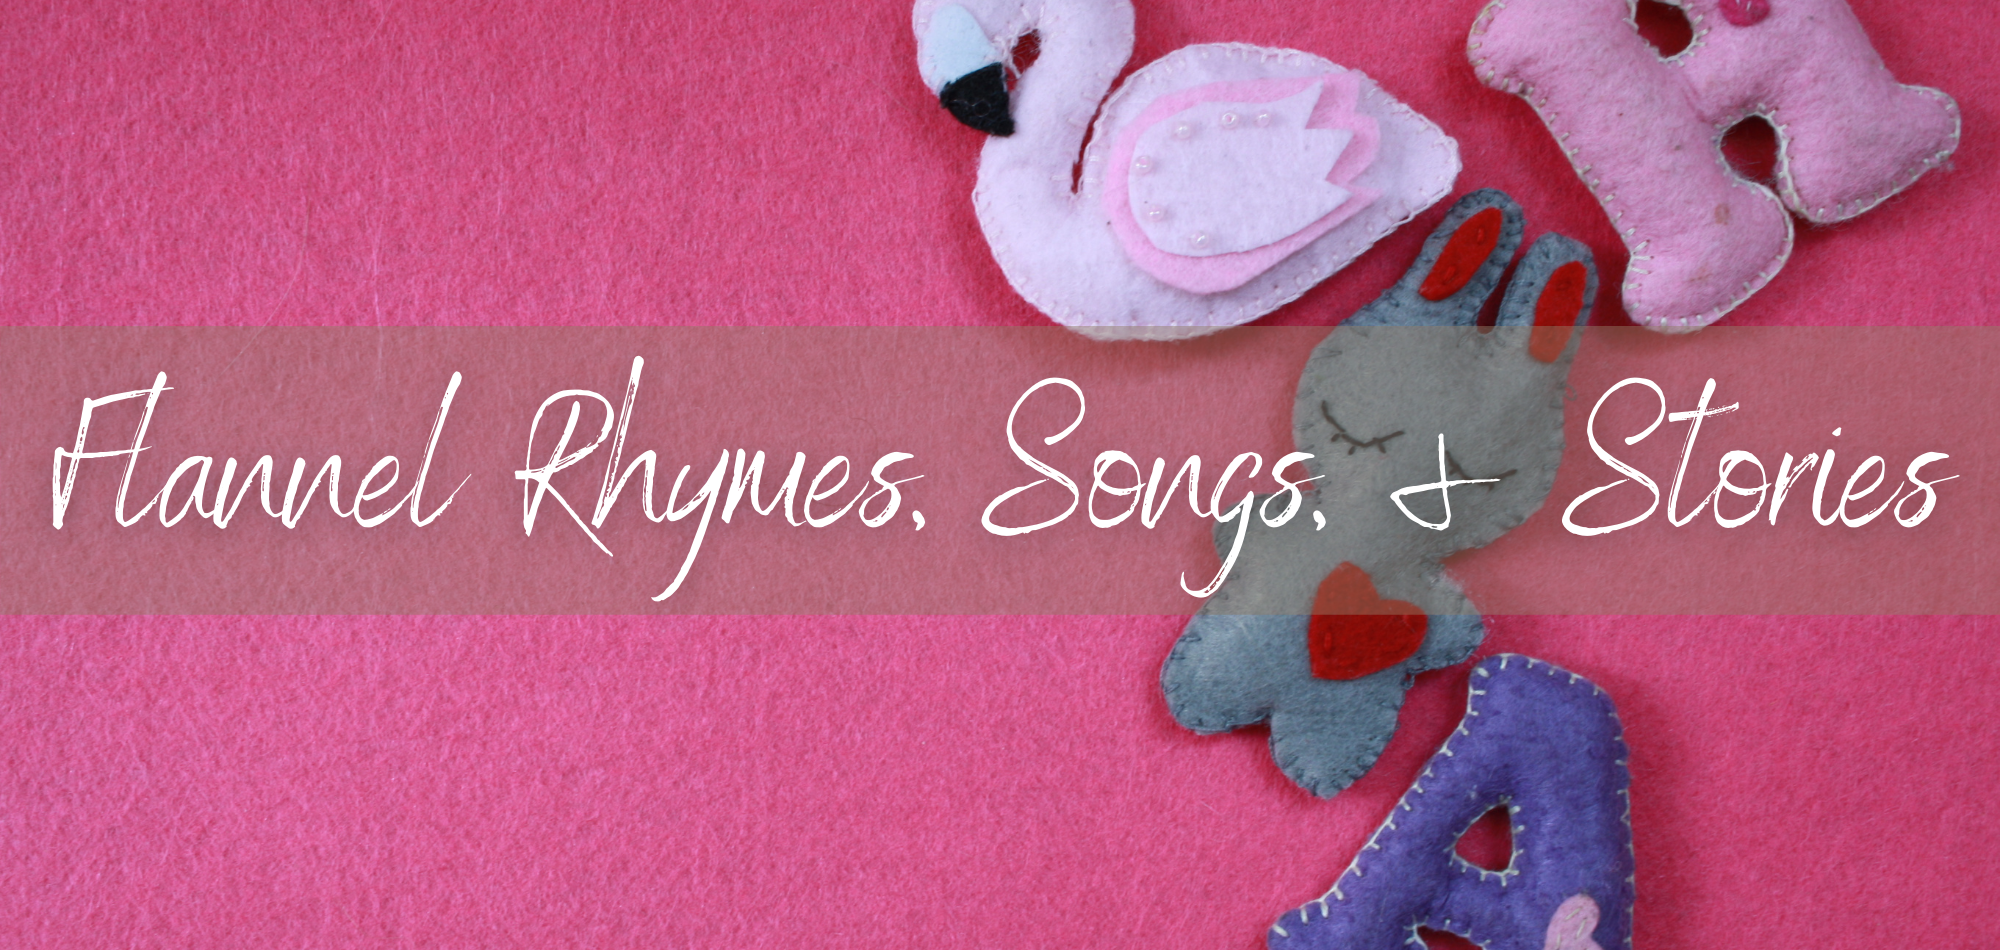 Flannel Rhymes, Songs, and Stories